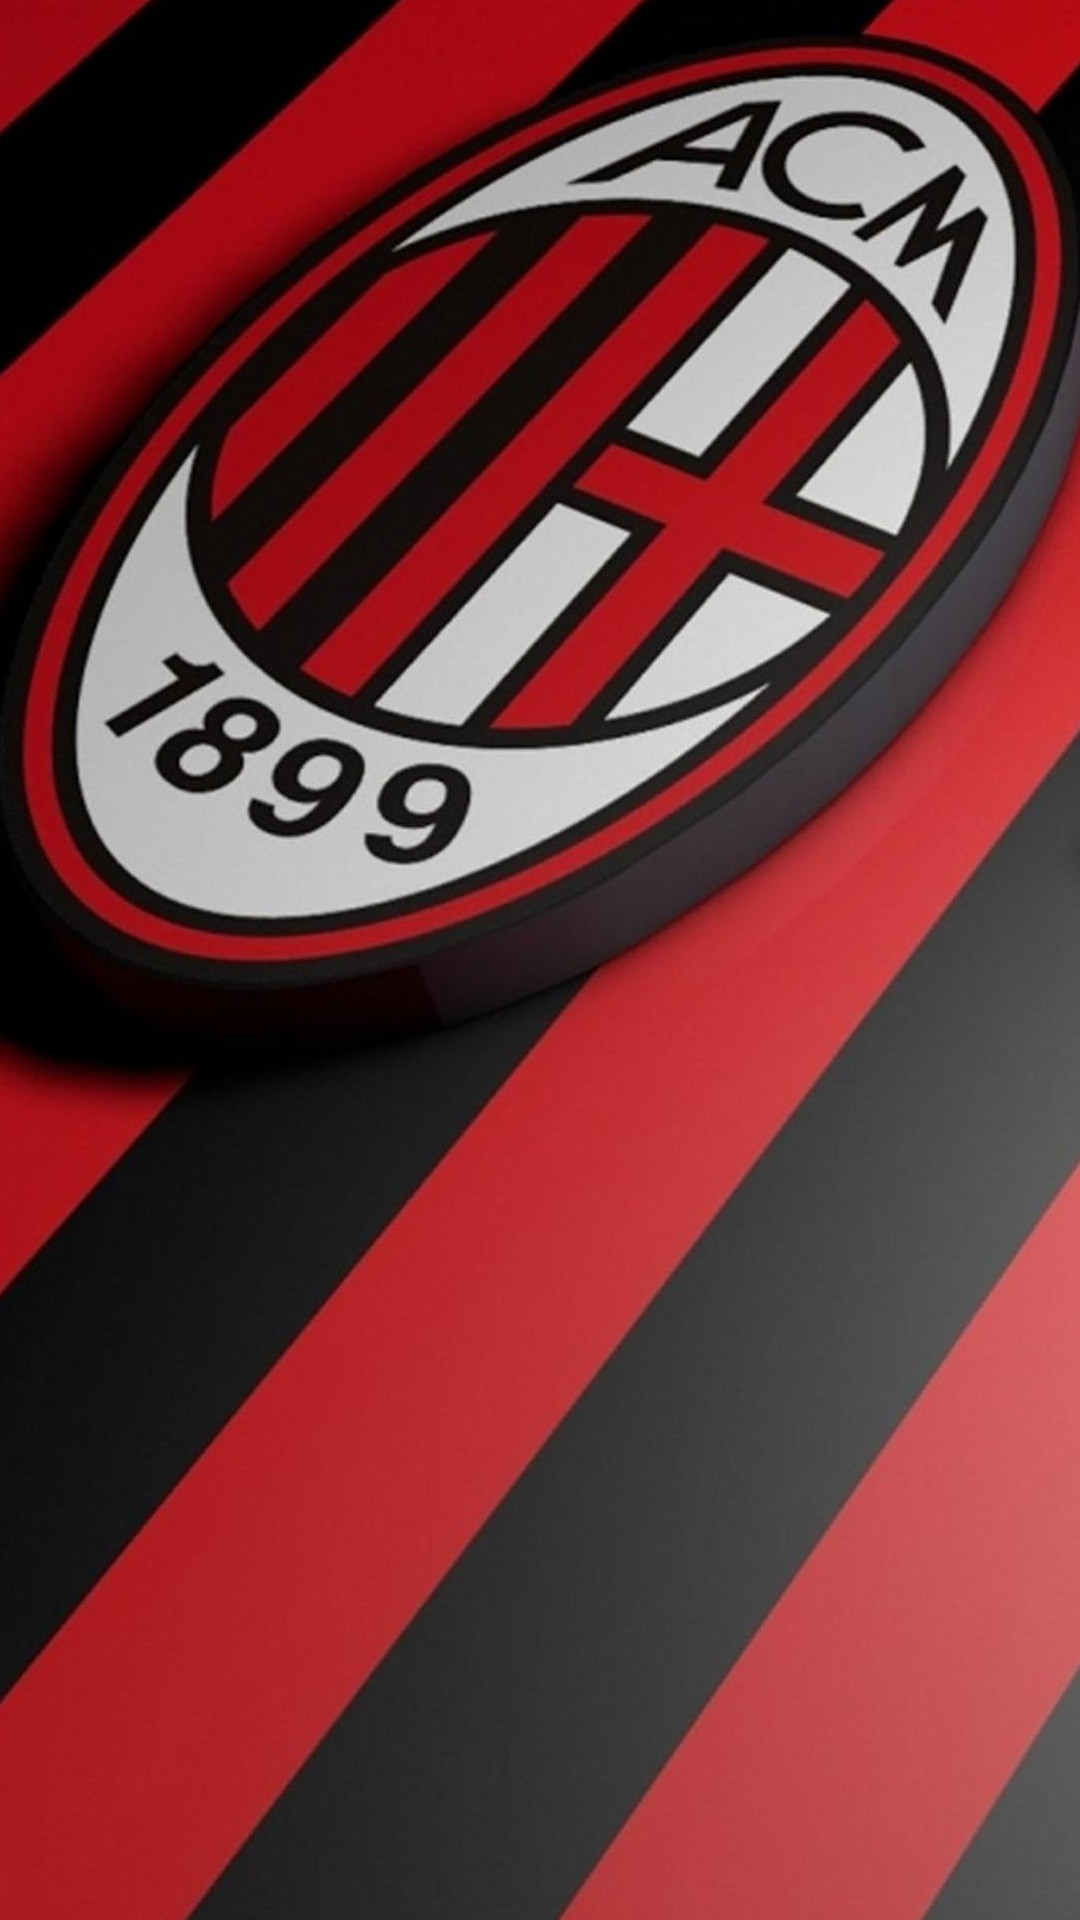 Wallpaper ac milan hd android